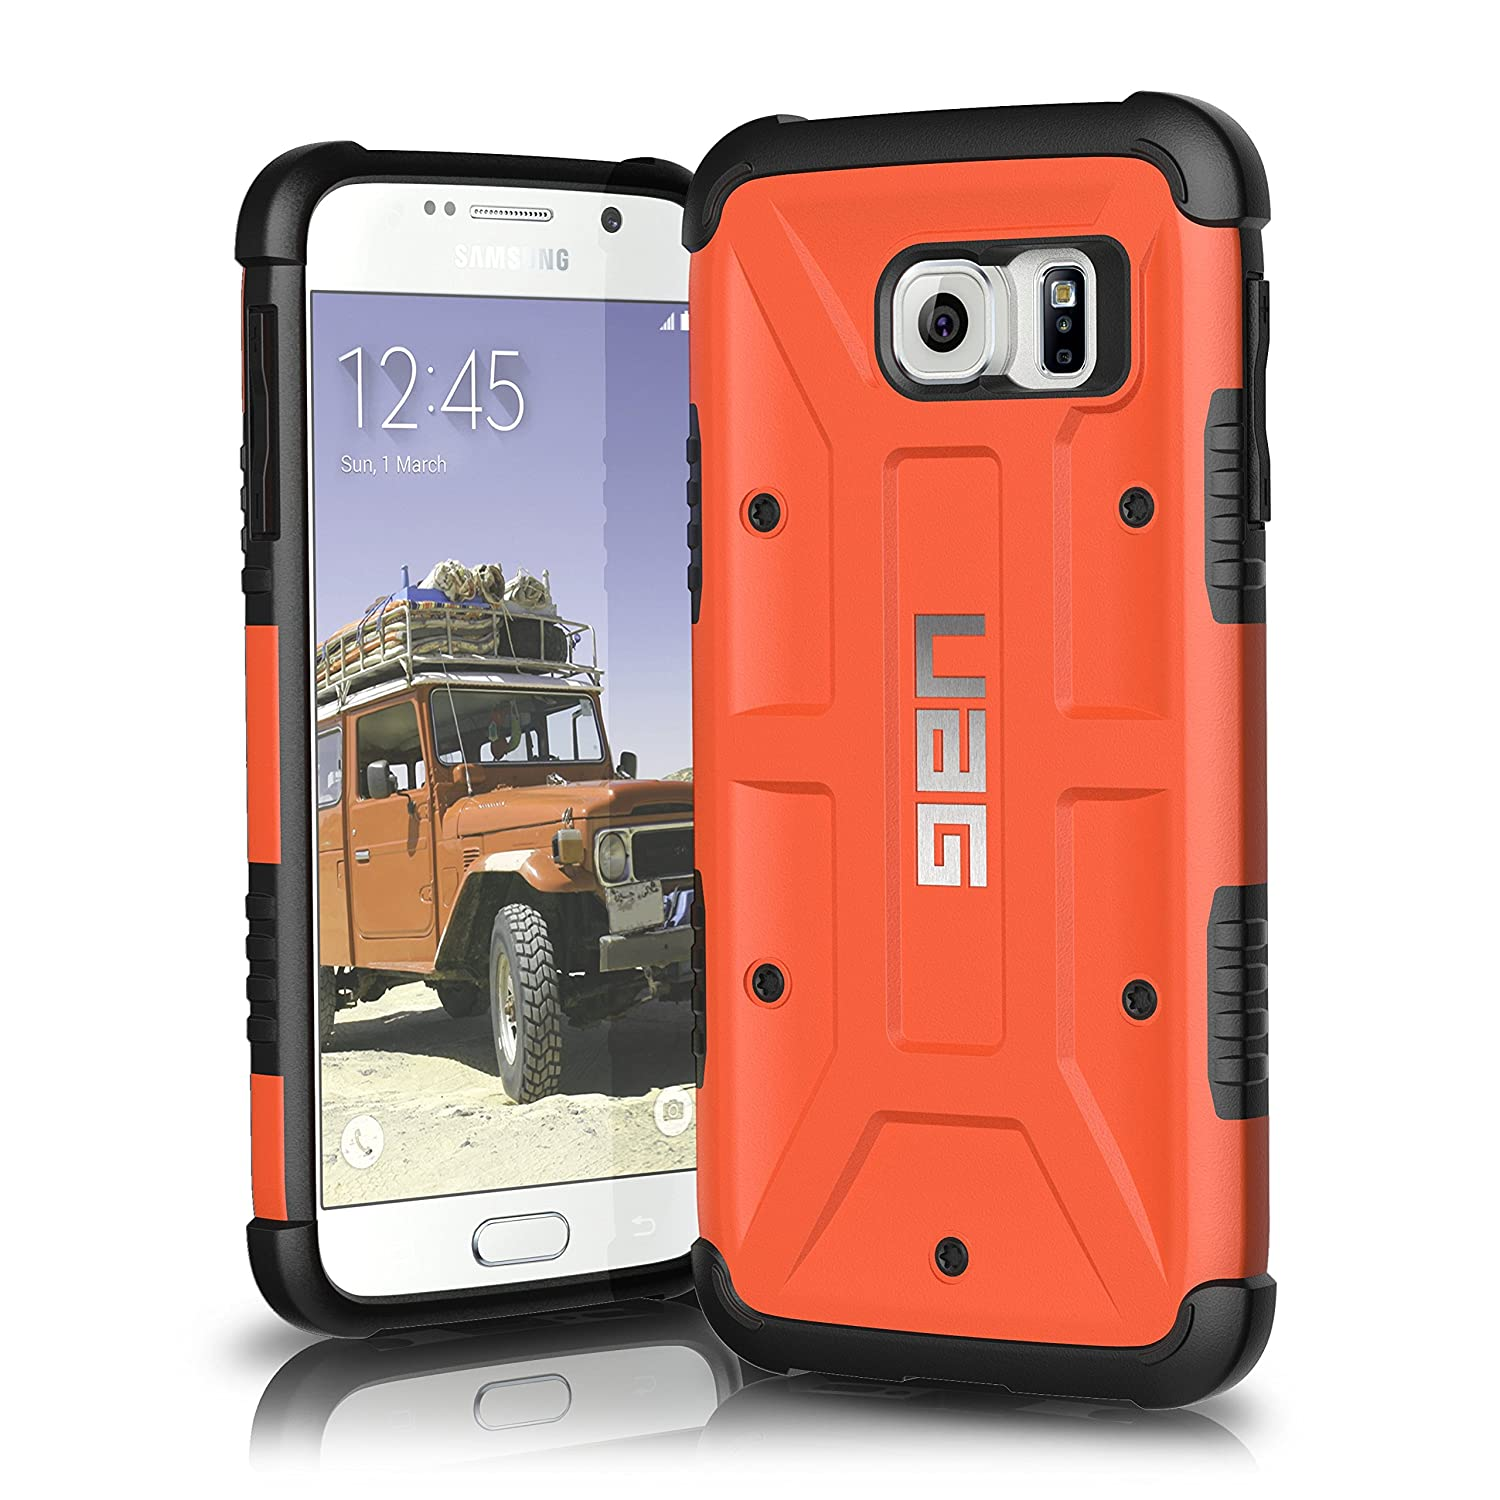 Galaxy s6 cases shop samsung cases online uag urban armor gear - Amazon Com Uag Samsung Galaxy S6 5 1 Inch Screen Feather Light Composite Rust Military Drop Tested Phone Case Cell Phones Accessories